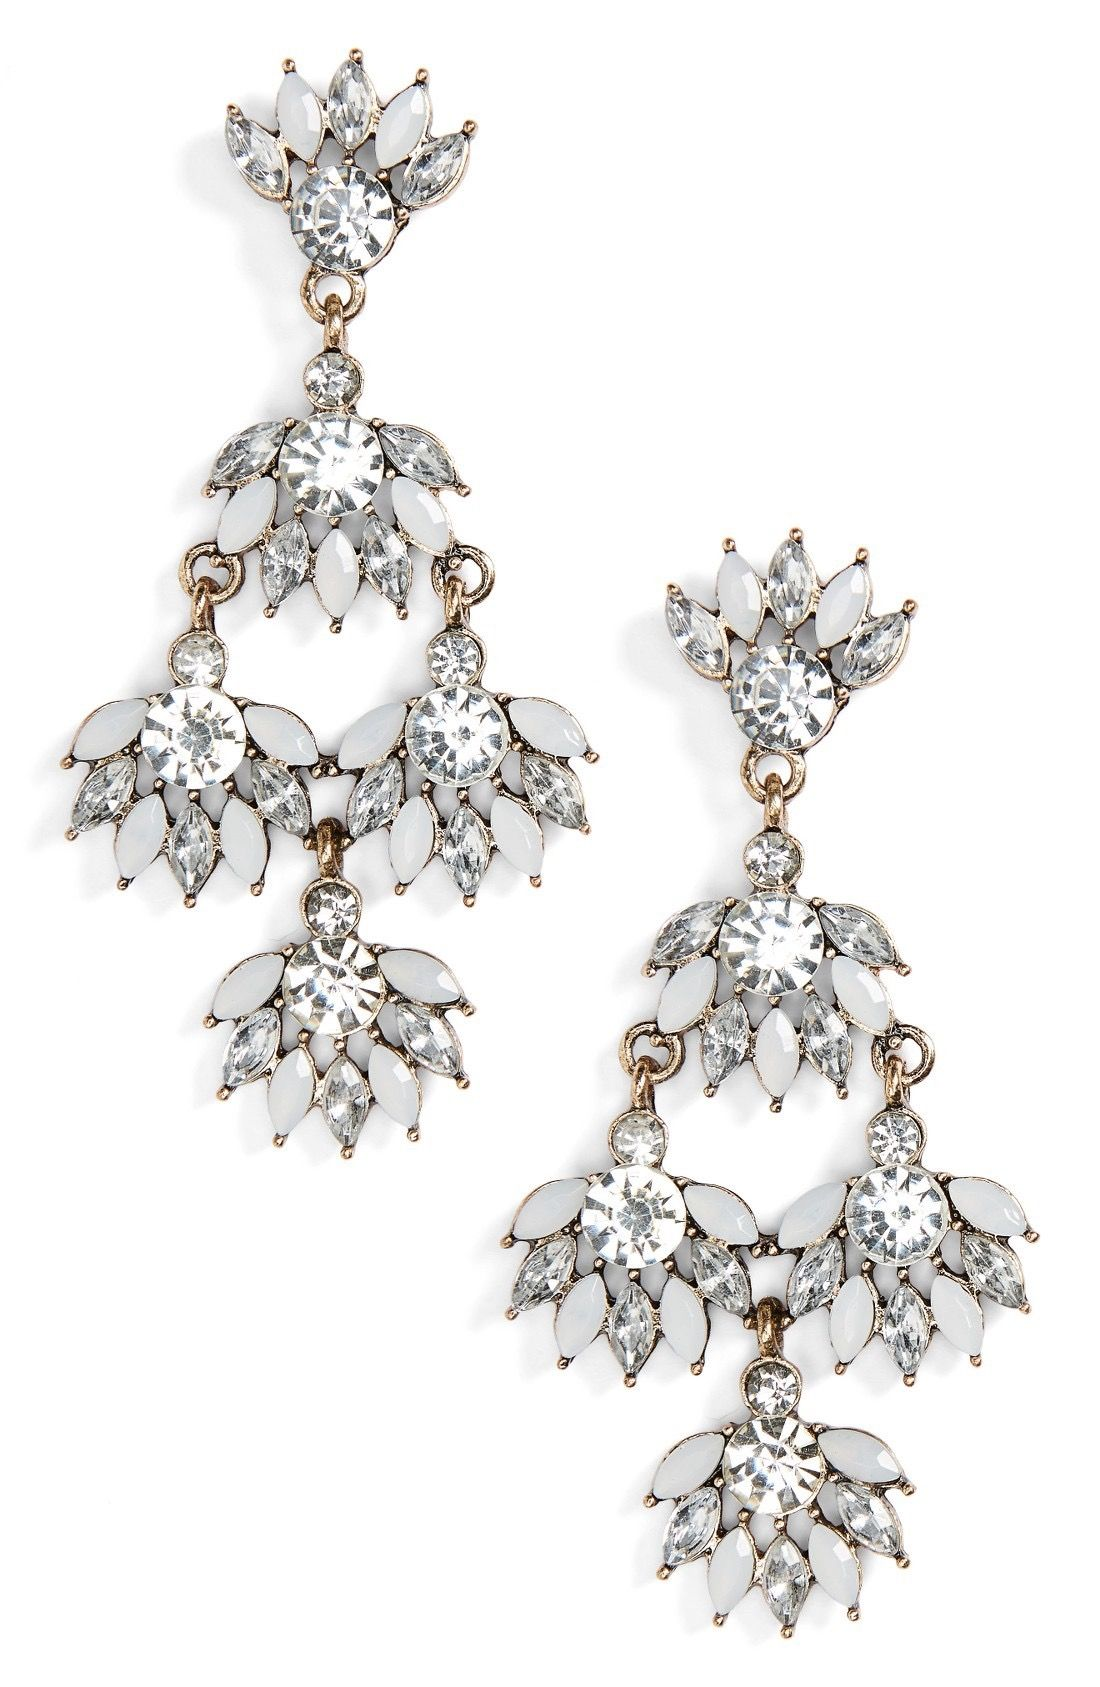 Sole society chandelier earrings available at nordstrom wedding explore chandelier earrings nordstrom and more arubaitofo Choice Image